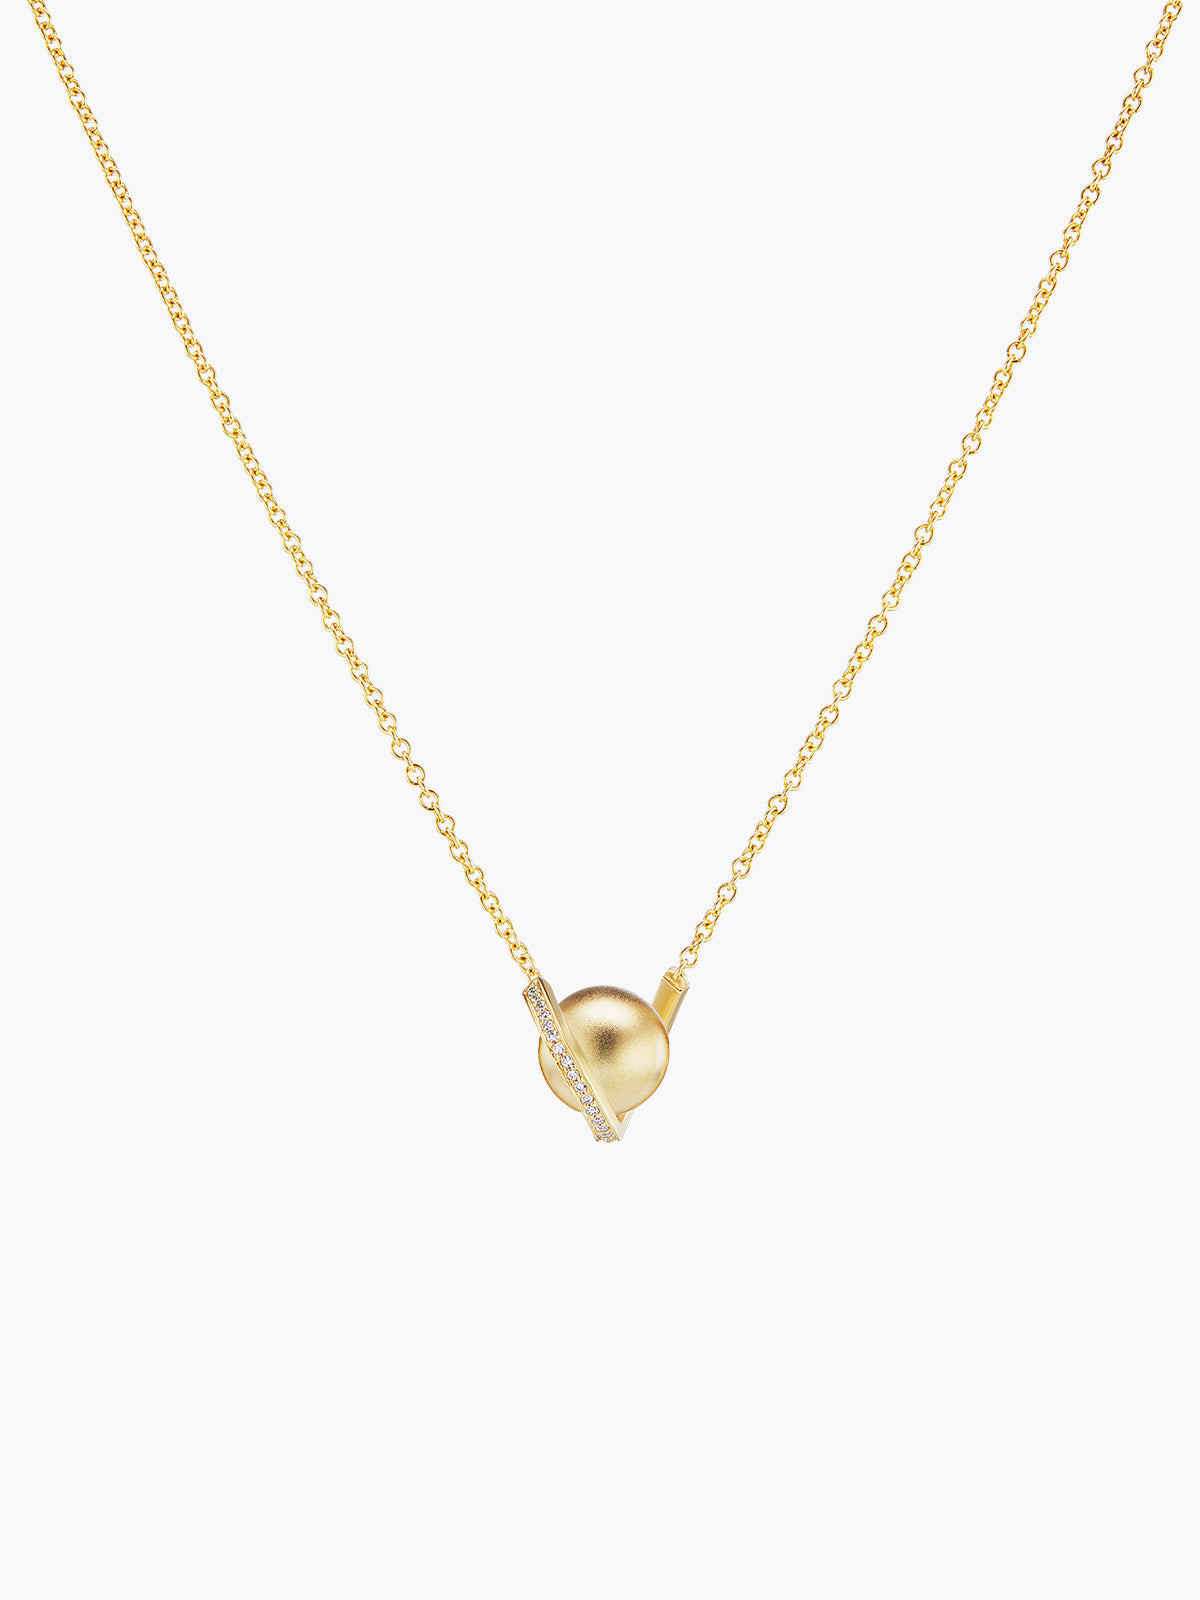 Exclusive Boule D'Or Solitaire Pendant | Matte